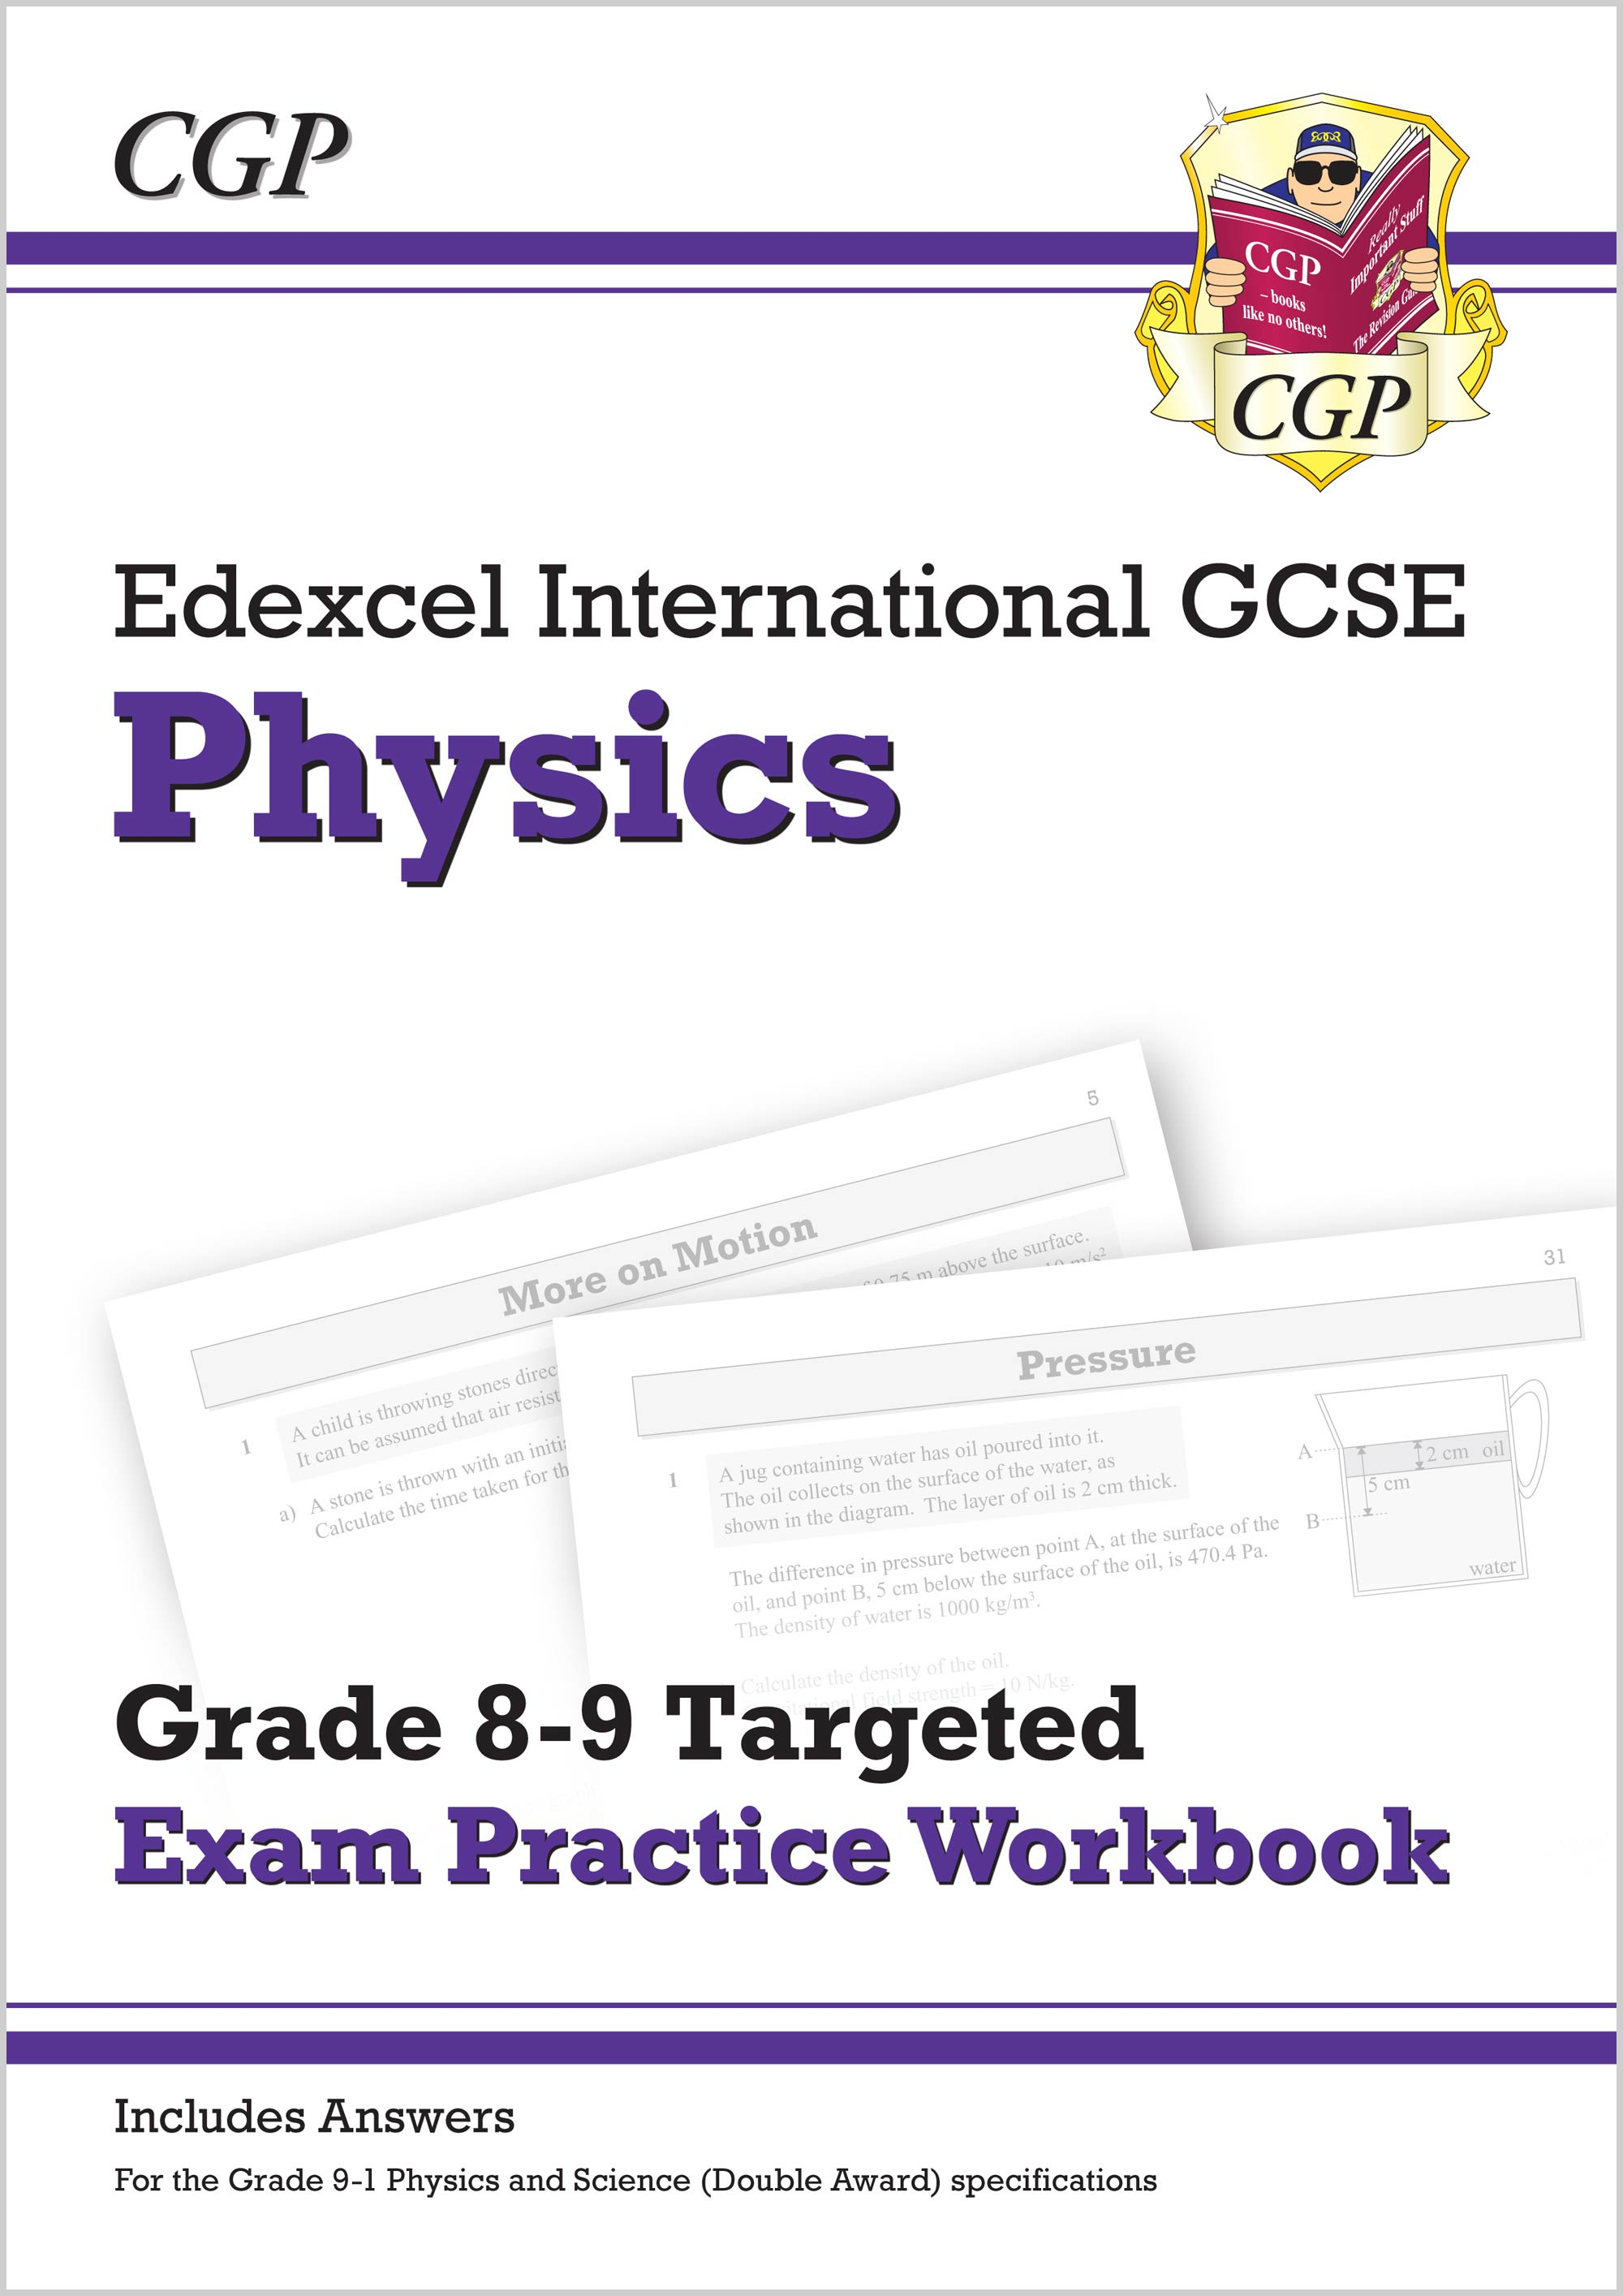 PE9QI41 - New Edexcel International GCSE Physics: Grade 8-9 Targeted Exam Practice Workbook (with an